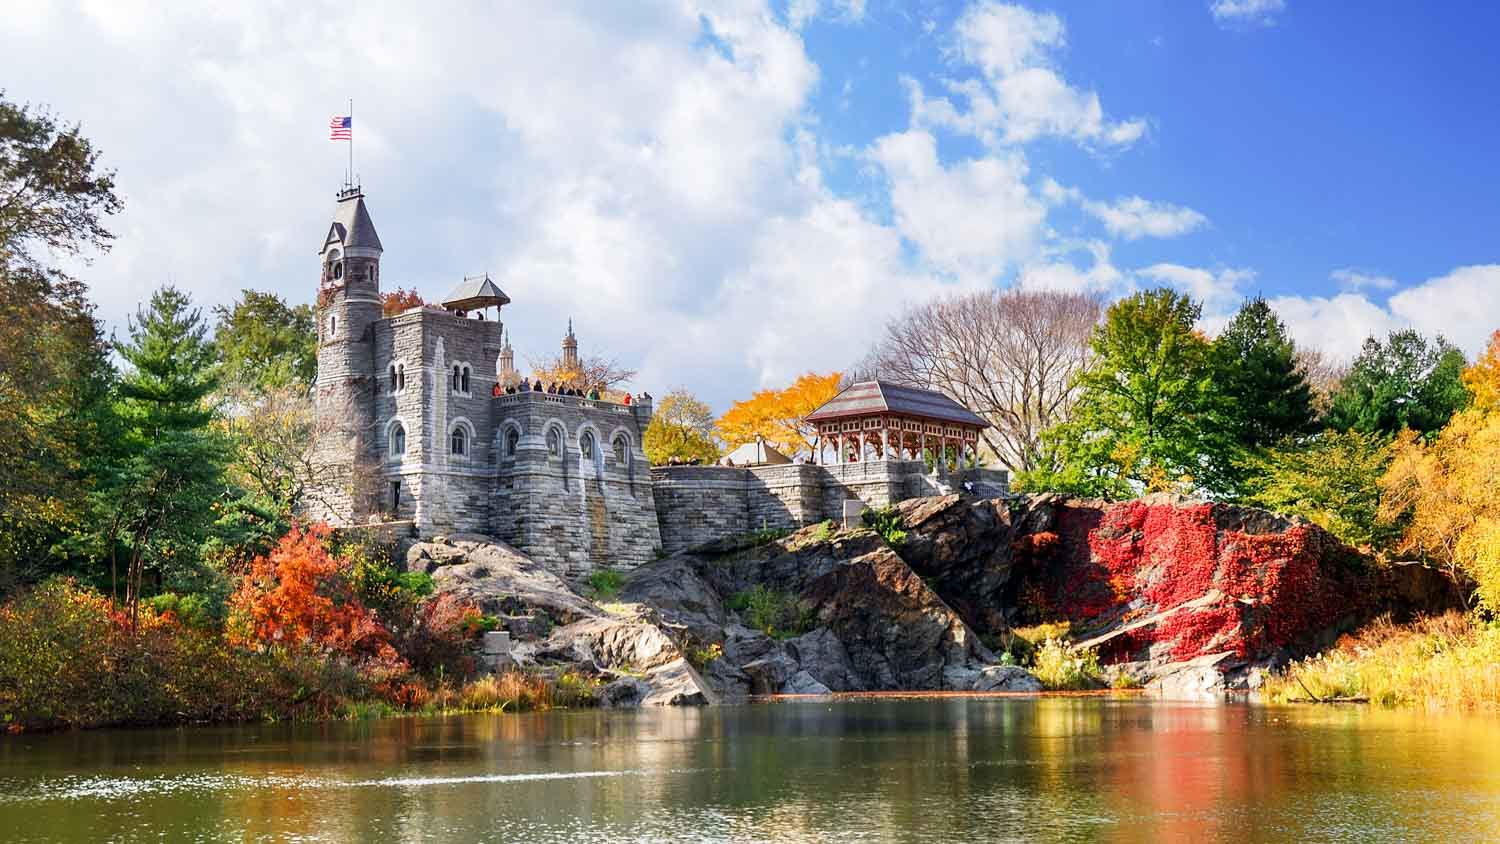 Top Montreal Parks & Nature Attractions: See reviews and photos of parks, gardens & other nature attractions in Montreal, Canada on TripAdvisor.